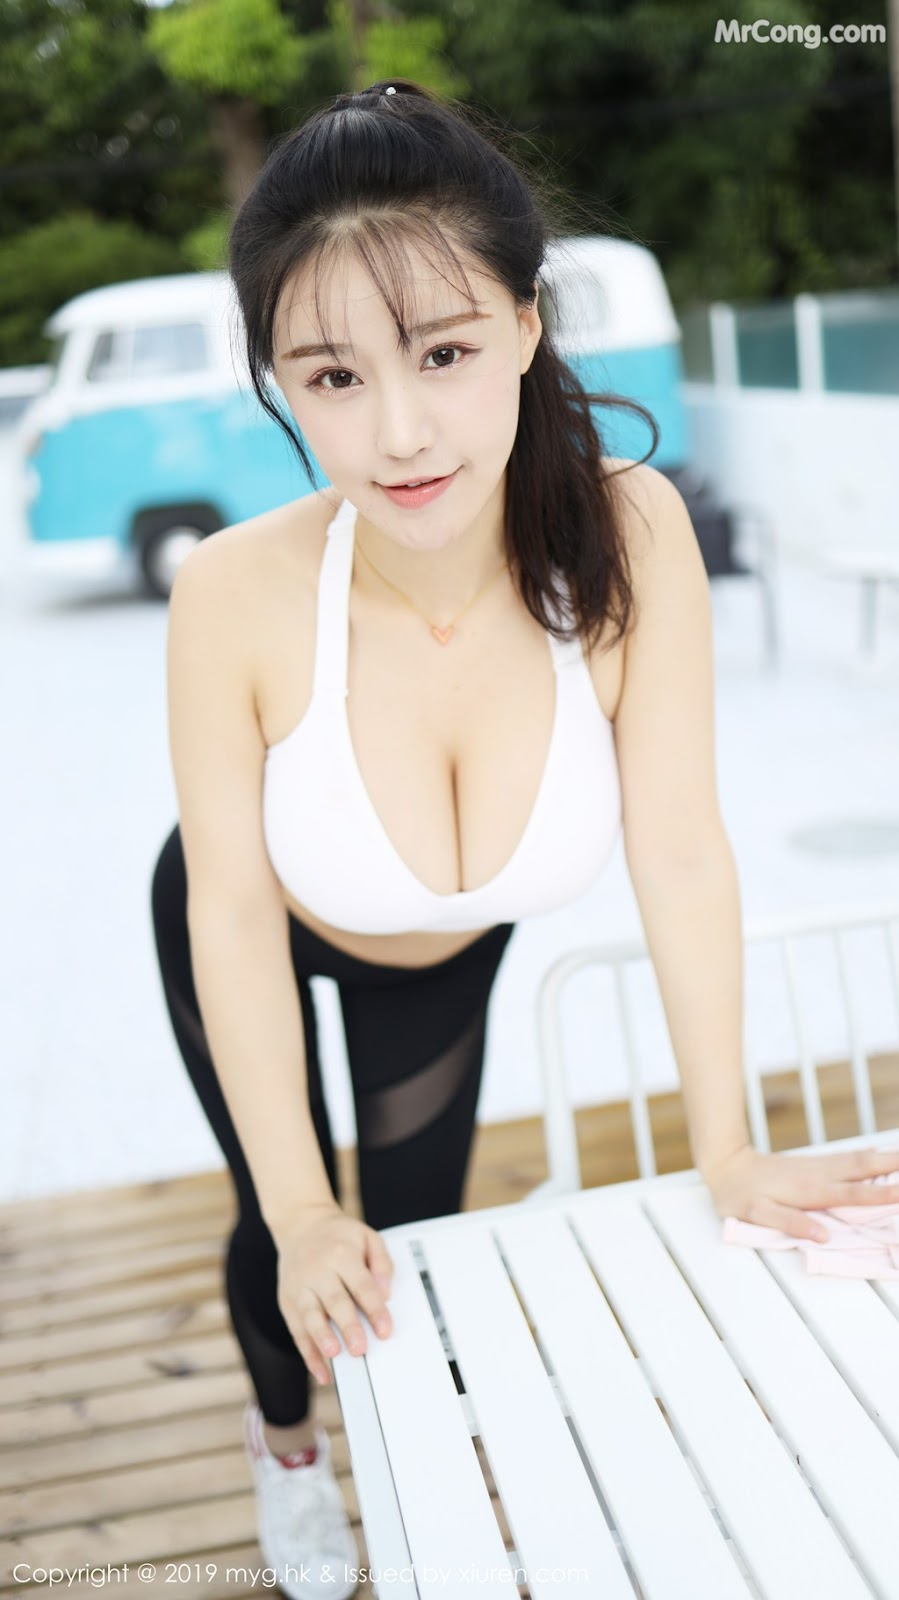 Image MyGirl-Vol.387-Zhu-Ke-Er-Flower-MrCong.com-049 in post MyGirl Vol.387: Zhu Ke Er (Flower朱可儿) (76 ảnh)